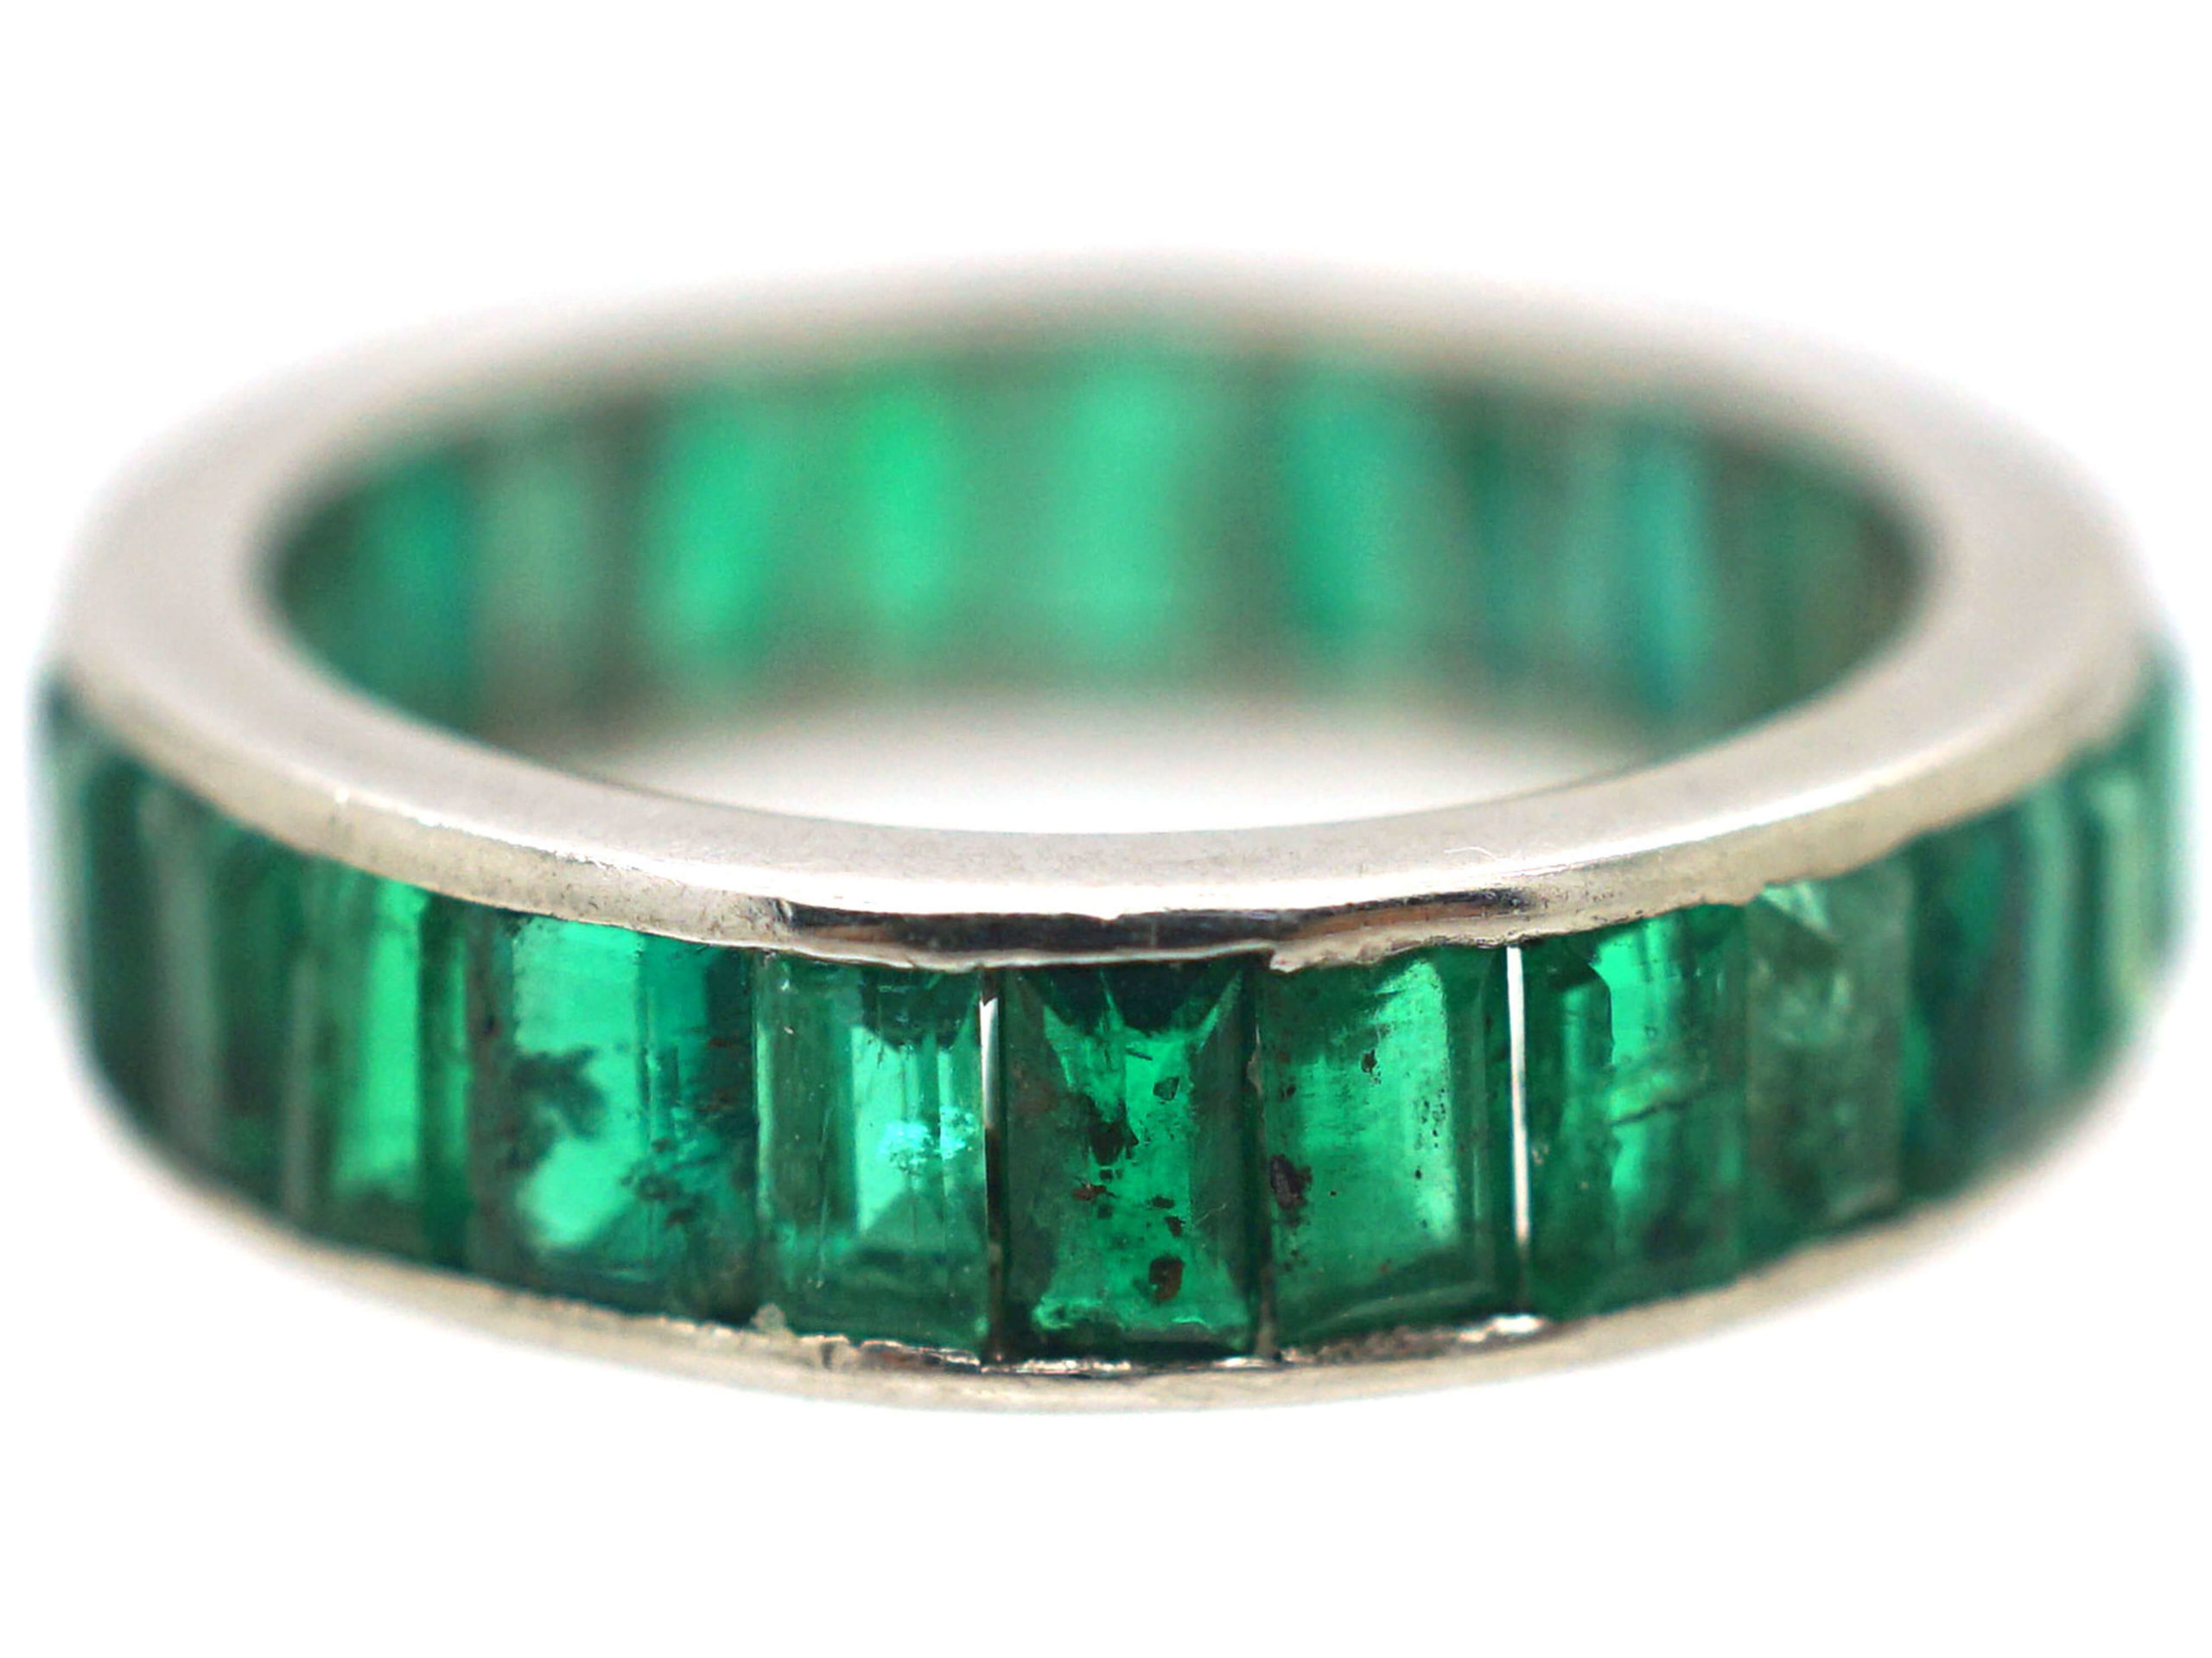 Art Deco 18ct White Gold Full Eternity Ring set with Baguette Cut Emeralds